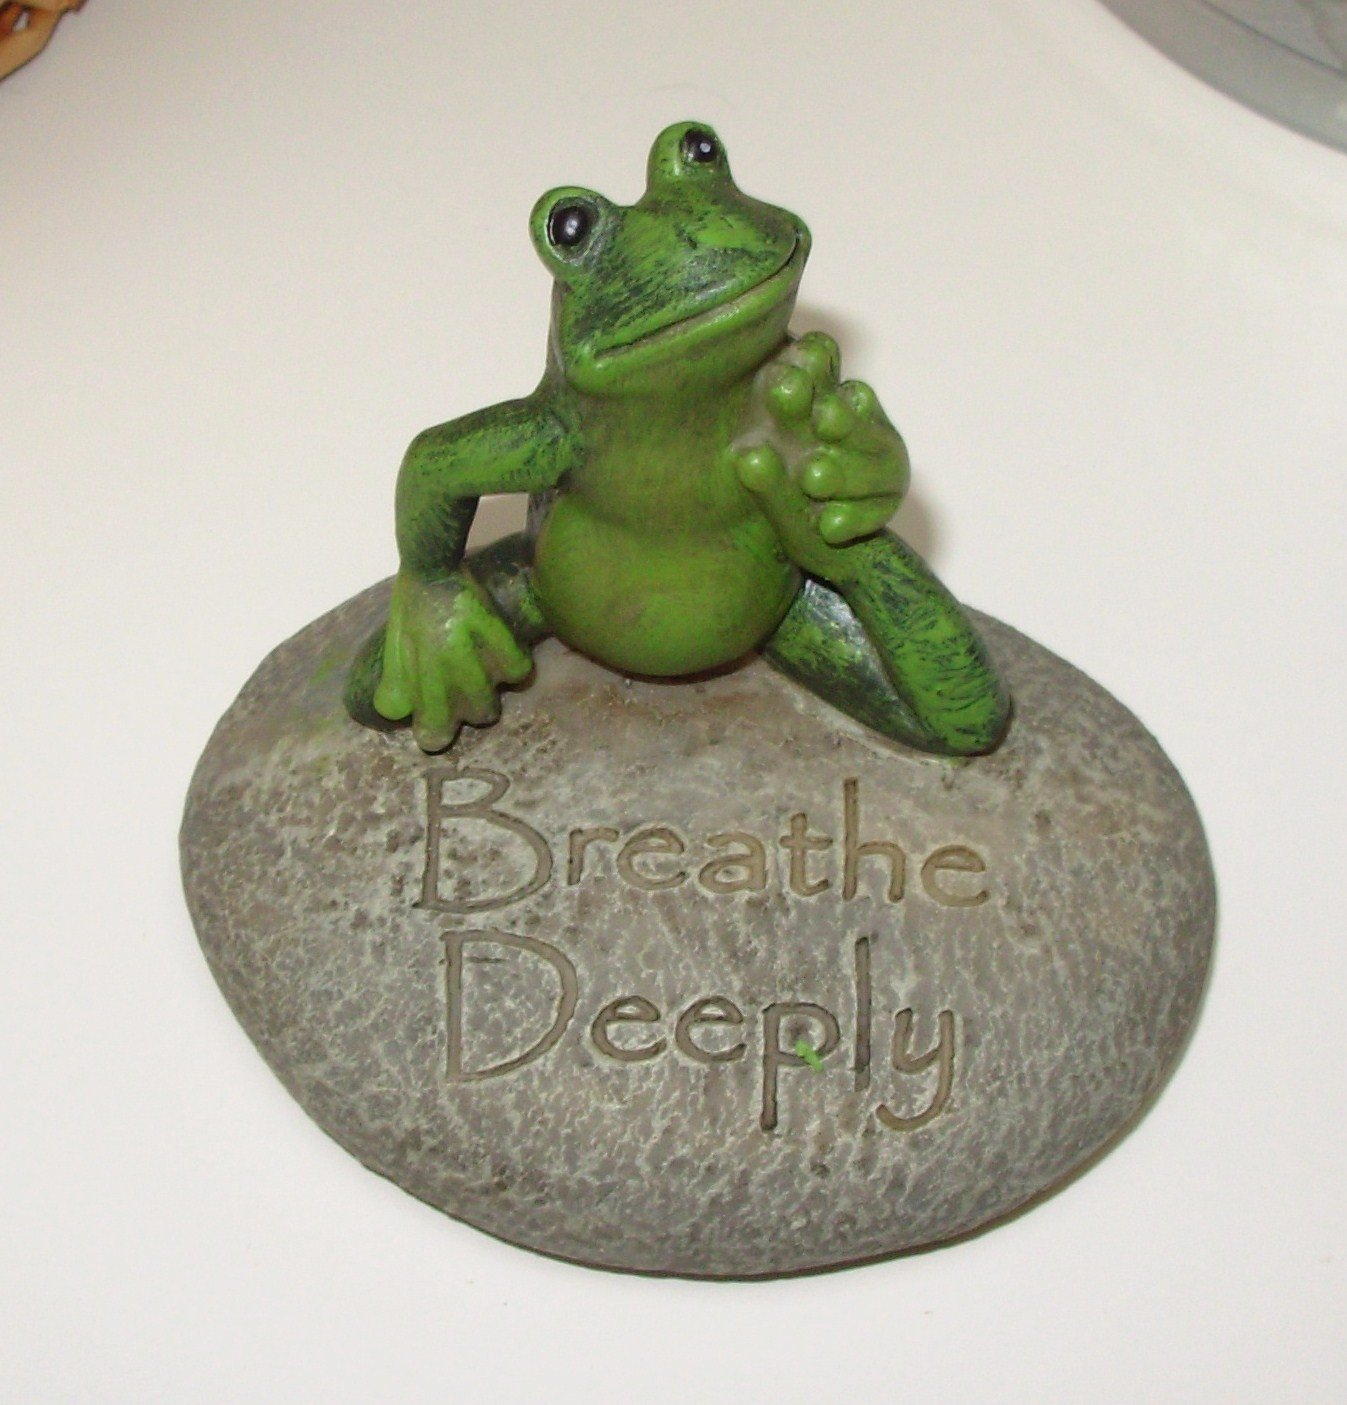 YOGA FROG ON ROCK POSING SAYS BREATHE DEEPLY RESIN FIGURINE NEW GANZ HOME DECOR